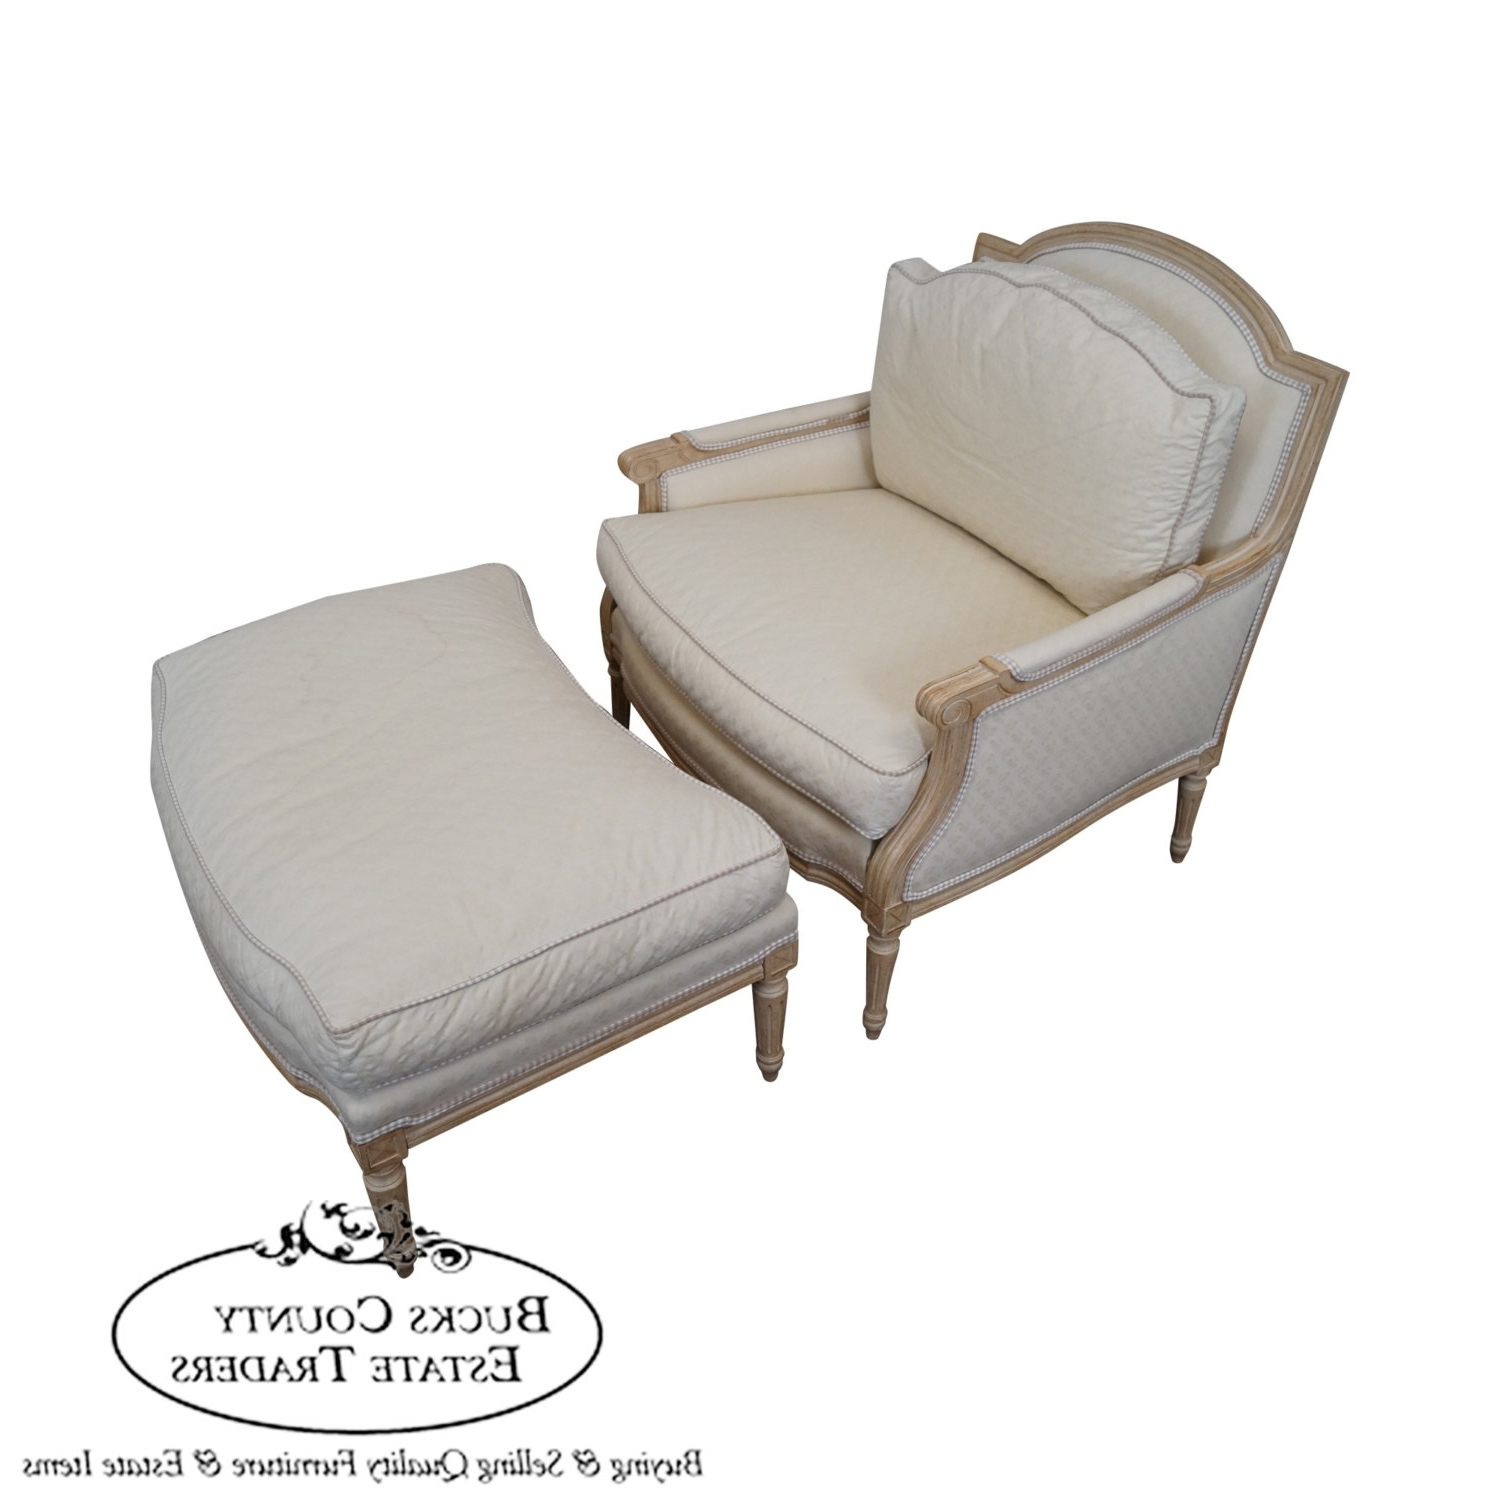 Most Recent Chaise Lounge Chairs With Ottoman Inside Heirloom Furniture French Louis Xv Style Bergere Chaise Lounge (View 4 of 15)